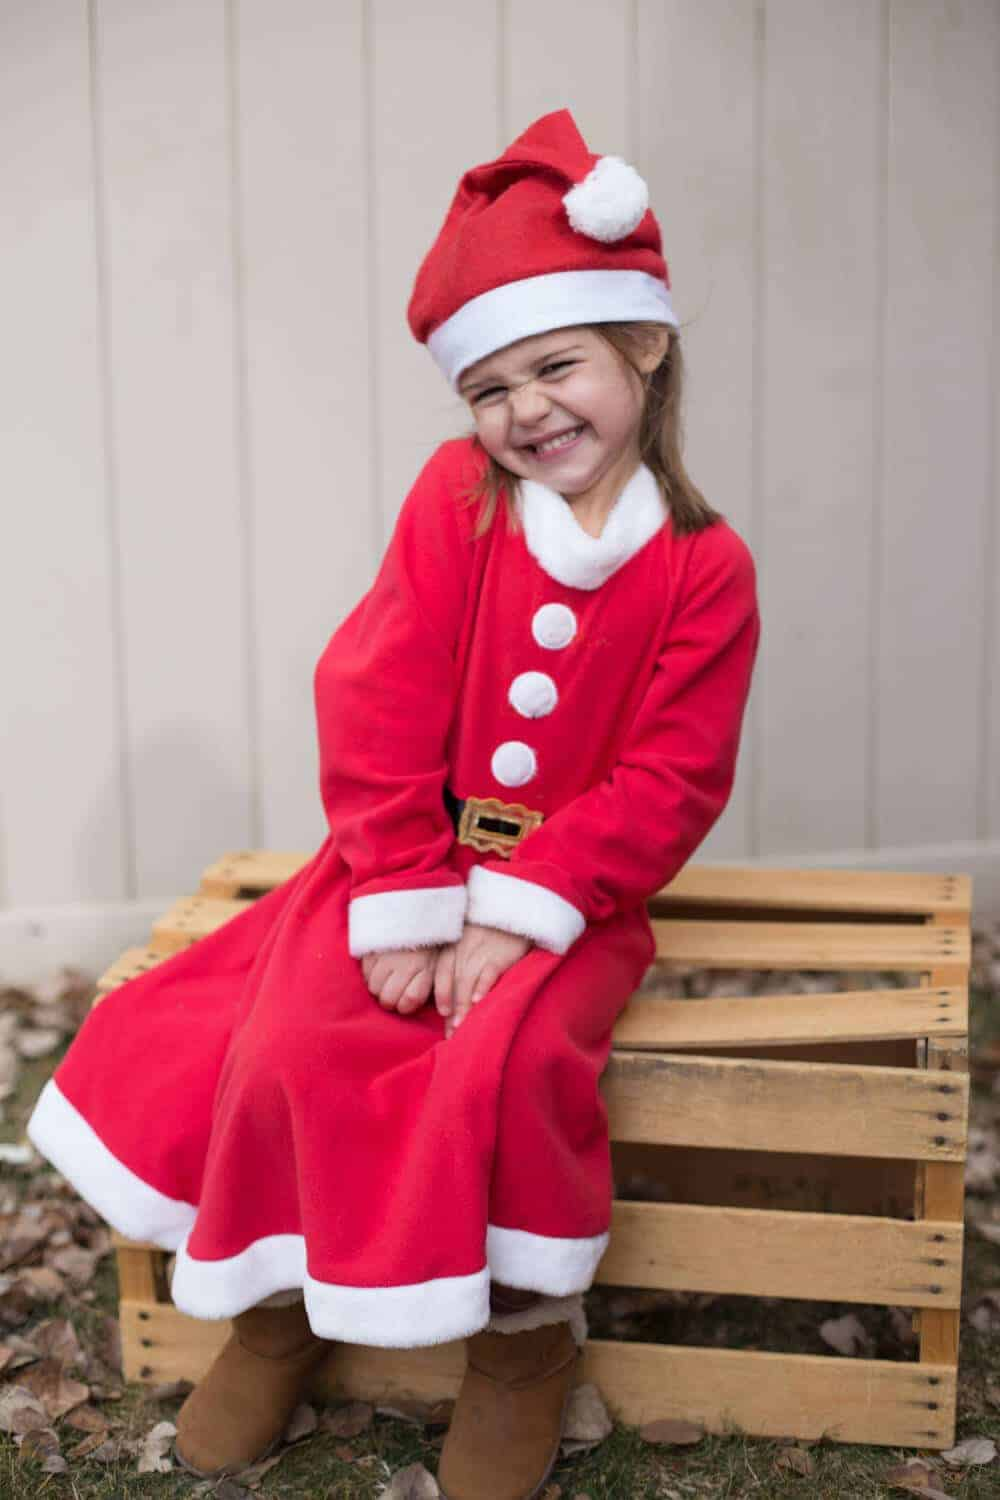 family halloween costume ideas- santa elf costume